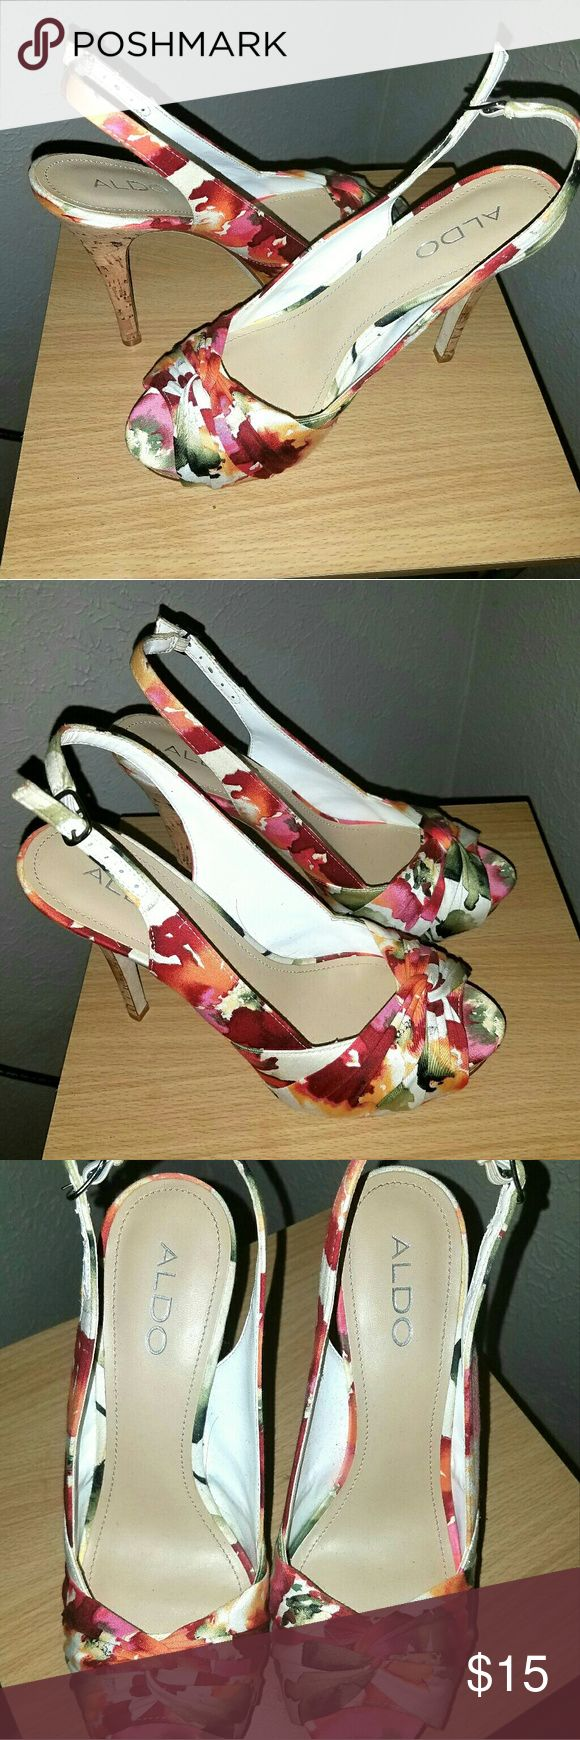 "Aldo Open Toe Floral Heels Pair of gently used floral strappy heels. Heel is low, approx 1.5"". Easy to walk in! Aldo Shoes Heels"